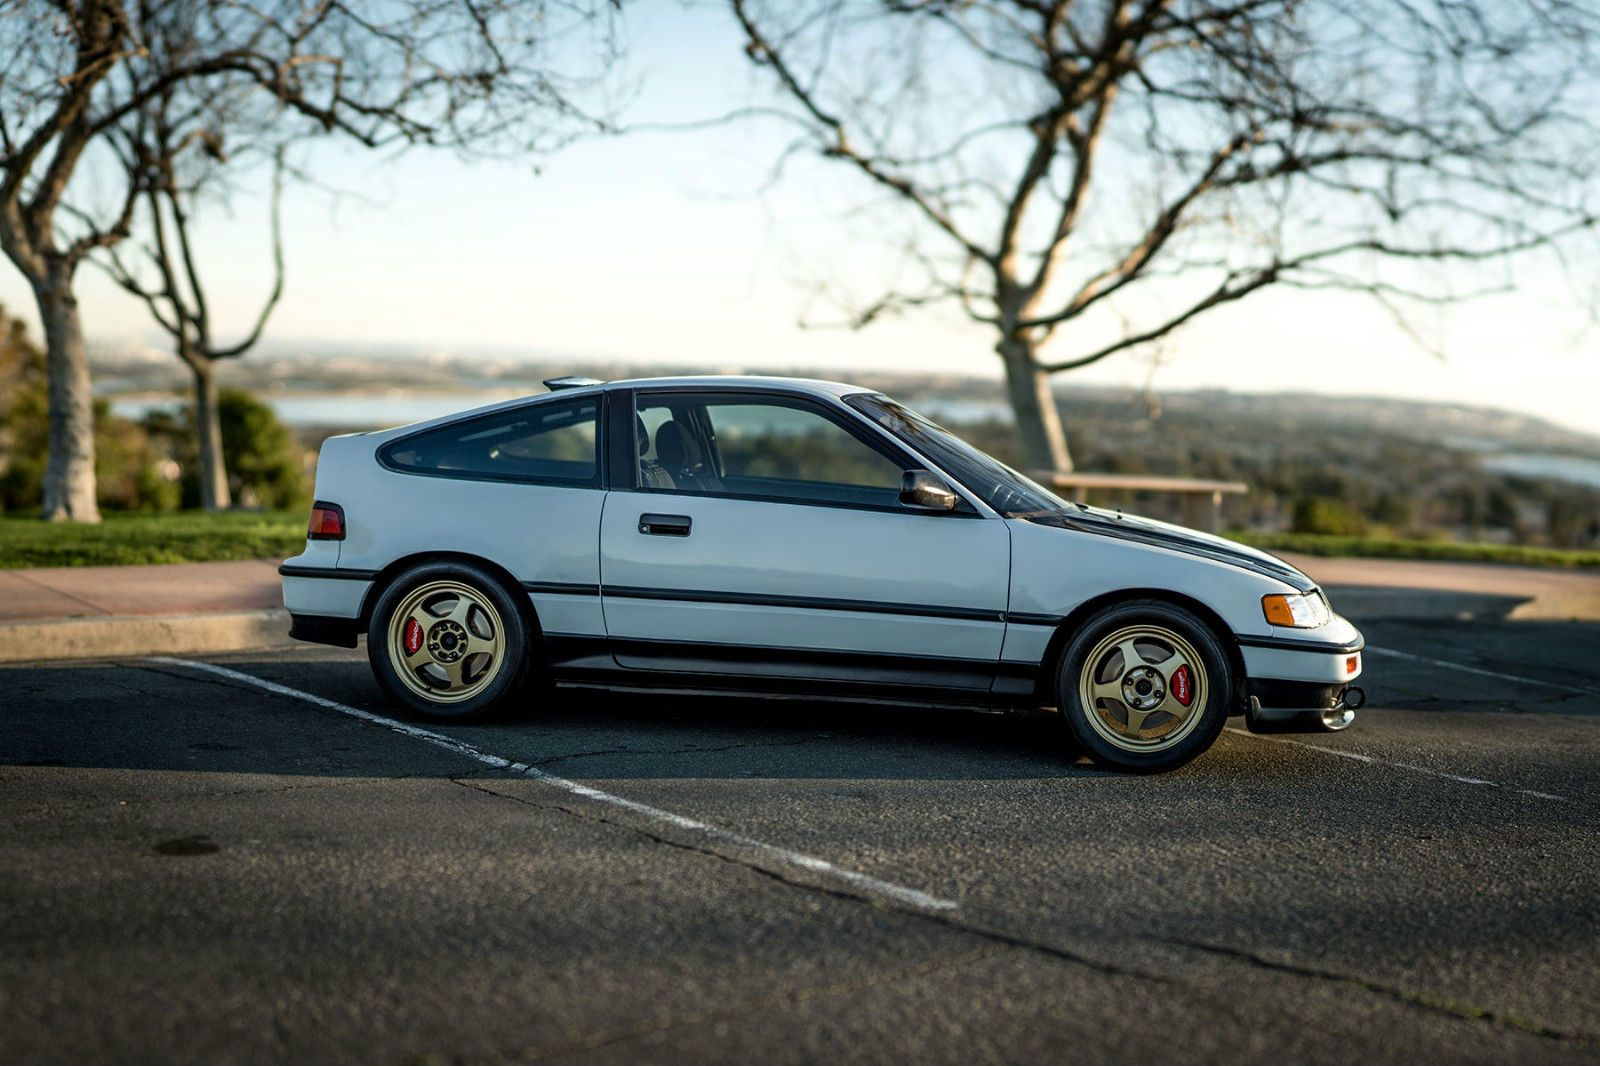 1991 Honda CRX Type R Swap | Japanese cars for sale | Pinterest ...